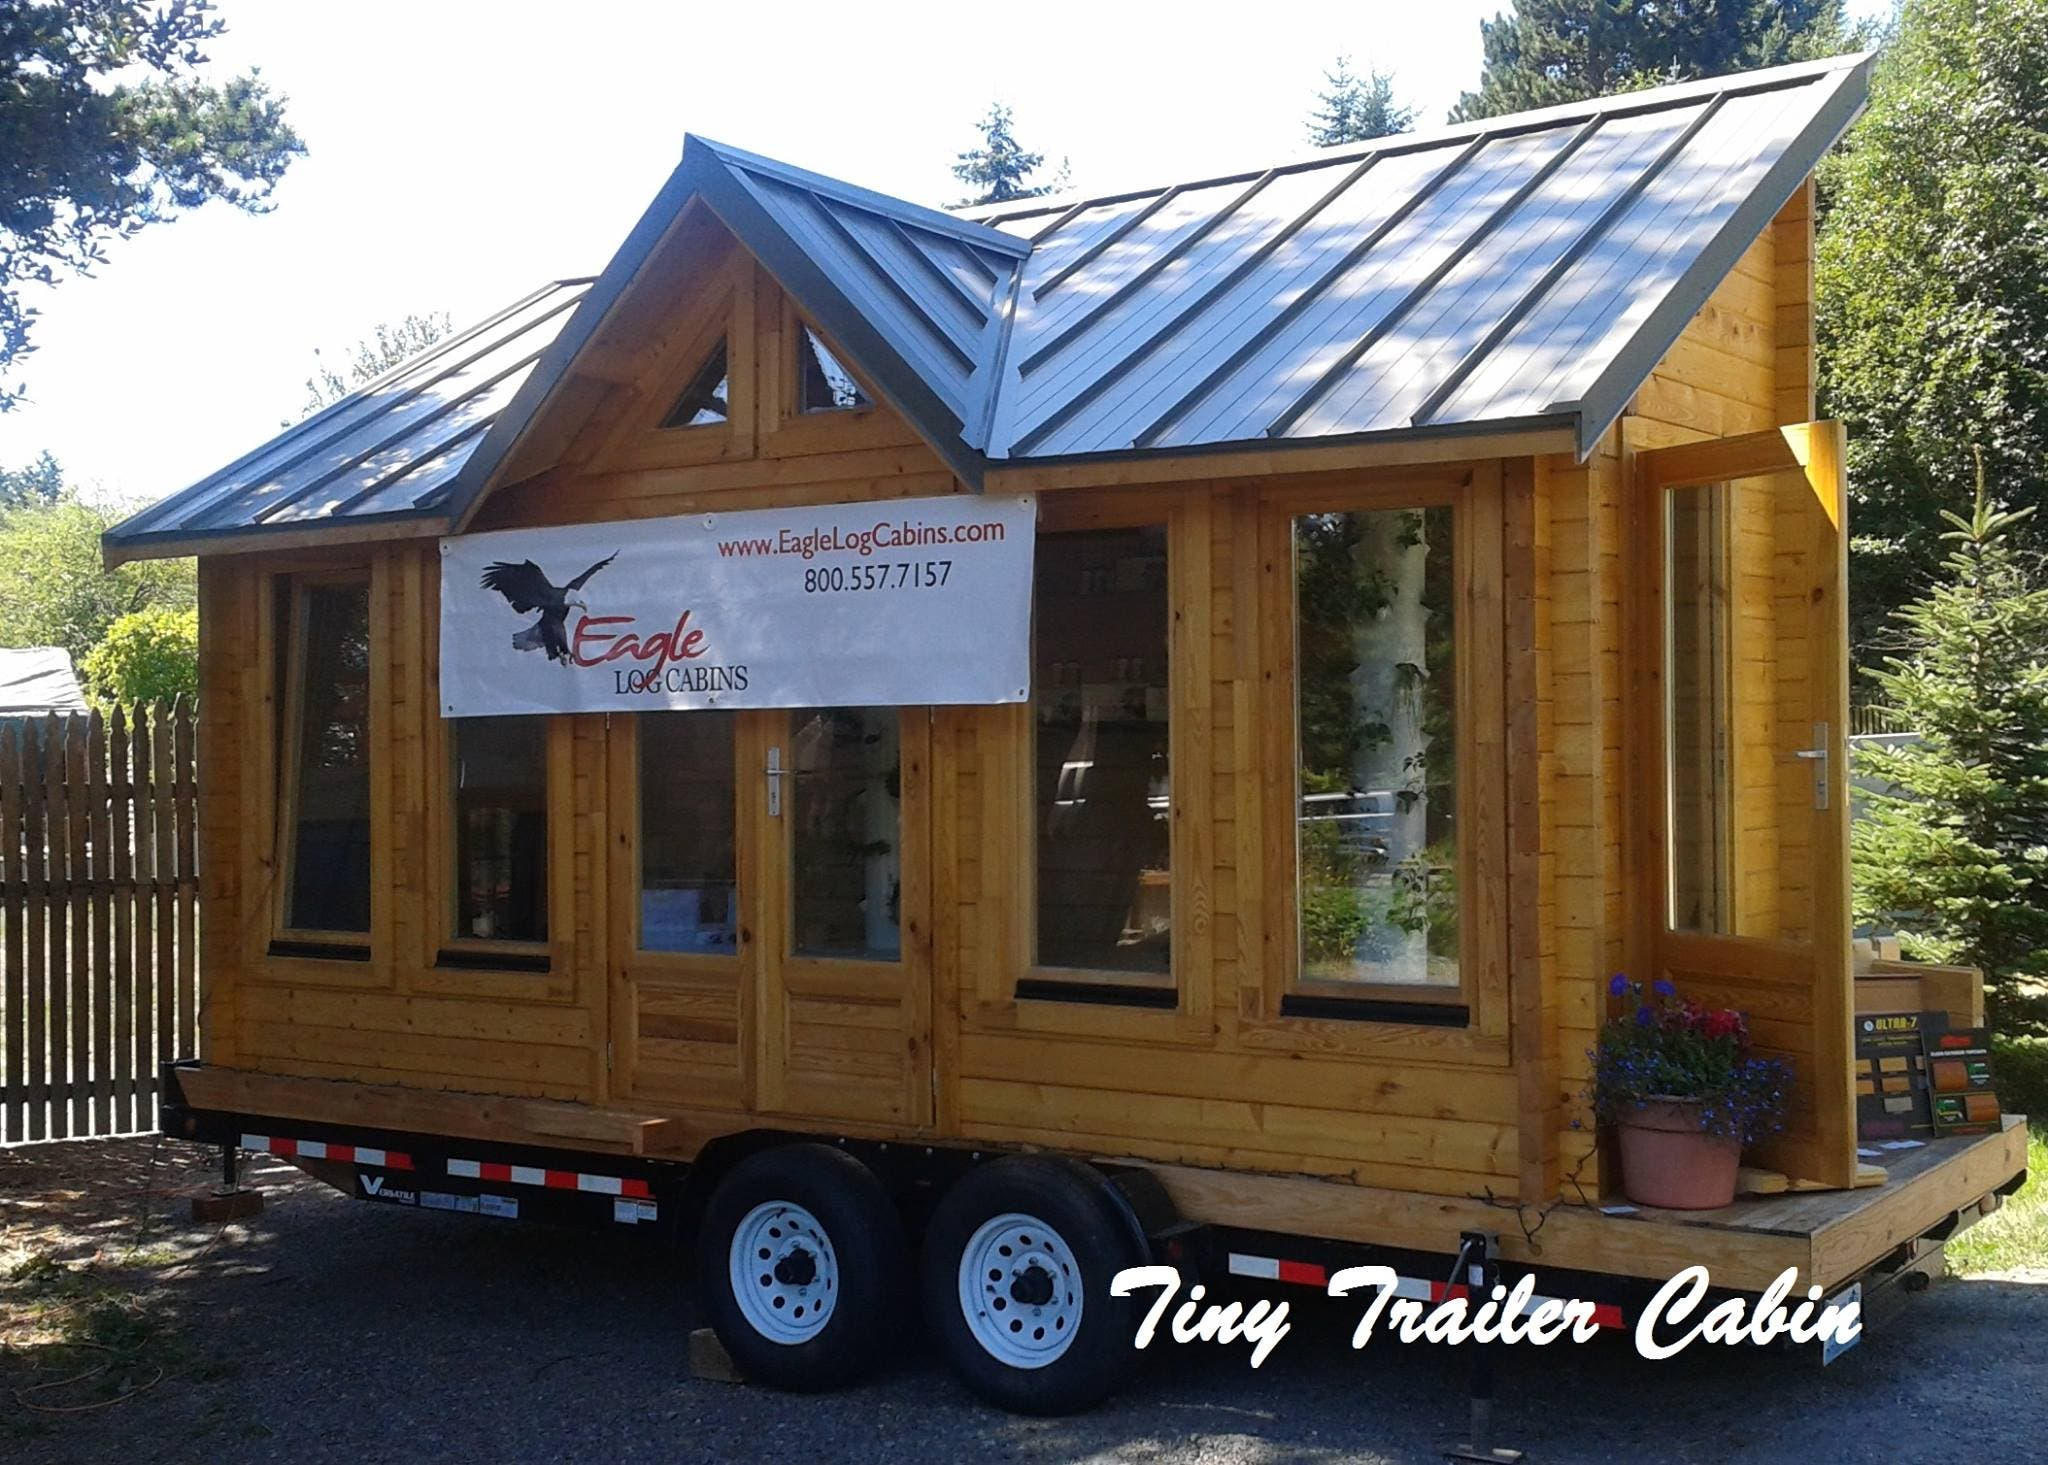 Tiny House Floor Plans Small Cabins Tiny Houses Small: Eagle Log Cabins